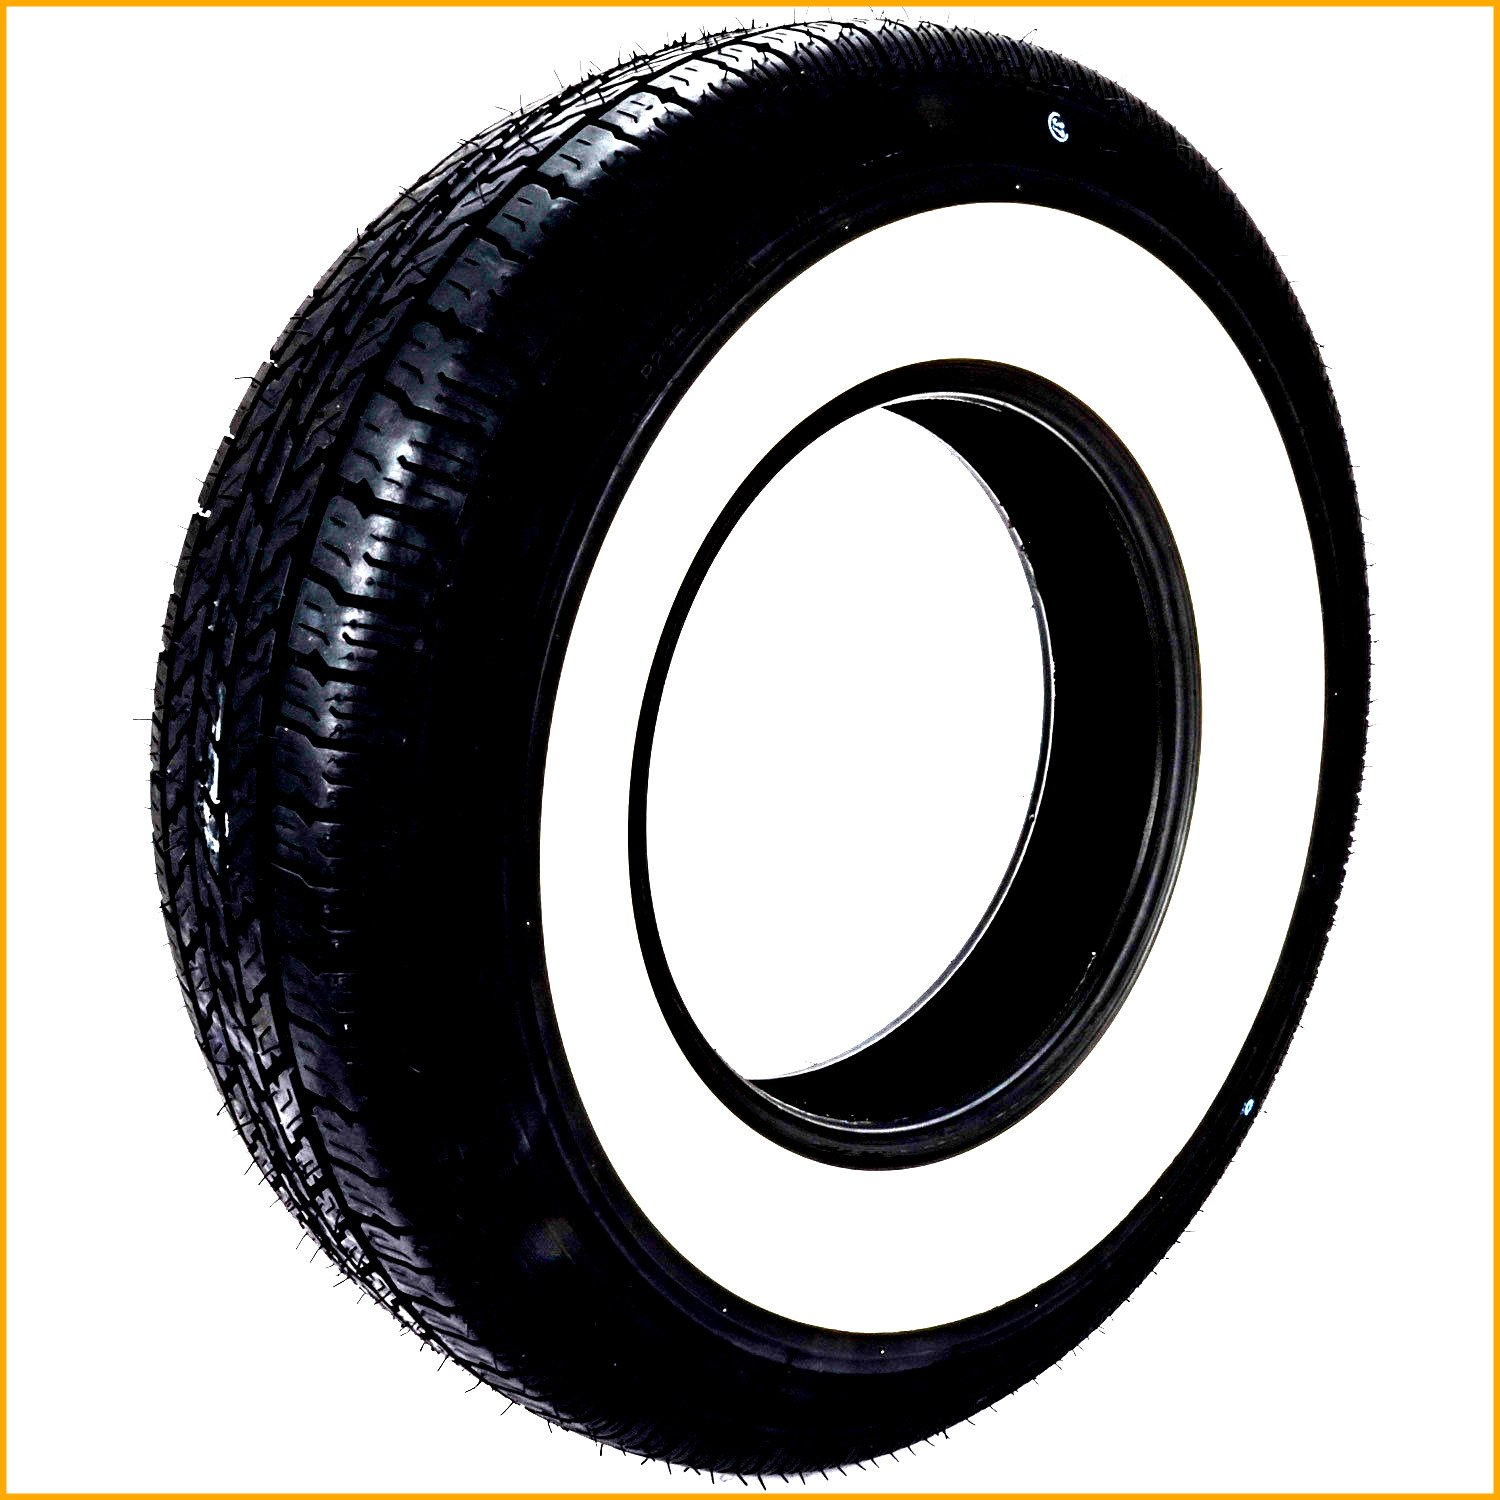 Radial Tire Automotive Classic Age Classic Nostalgia Whitewall Original Car Vehicle High Performance Driving Parts - House Deals